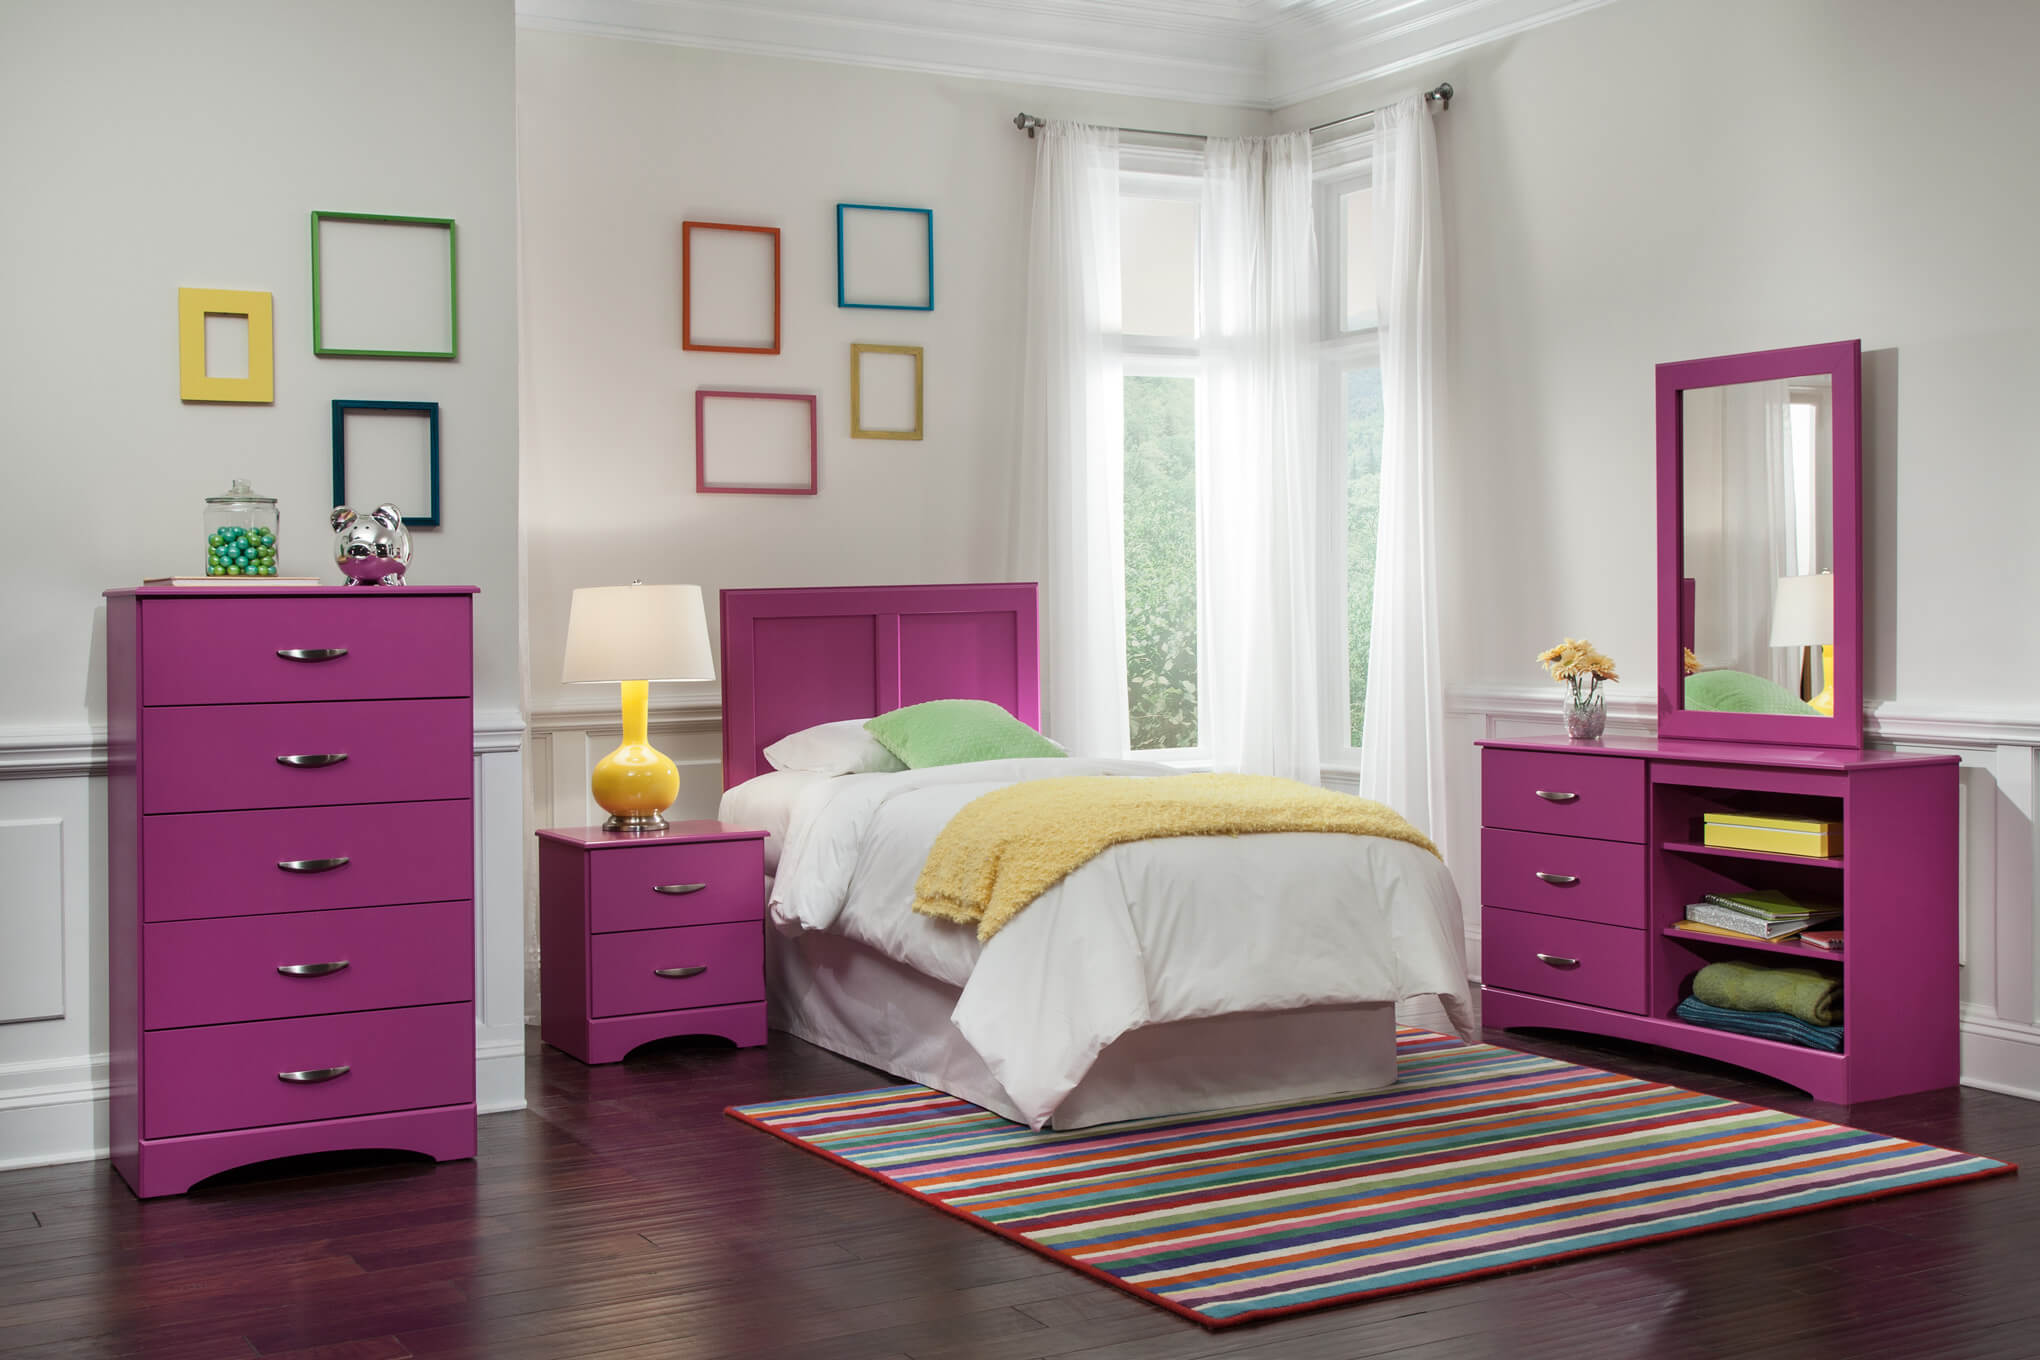 Image result for KITH KIDS BEDROOM FURNITURE